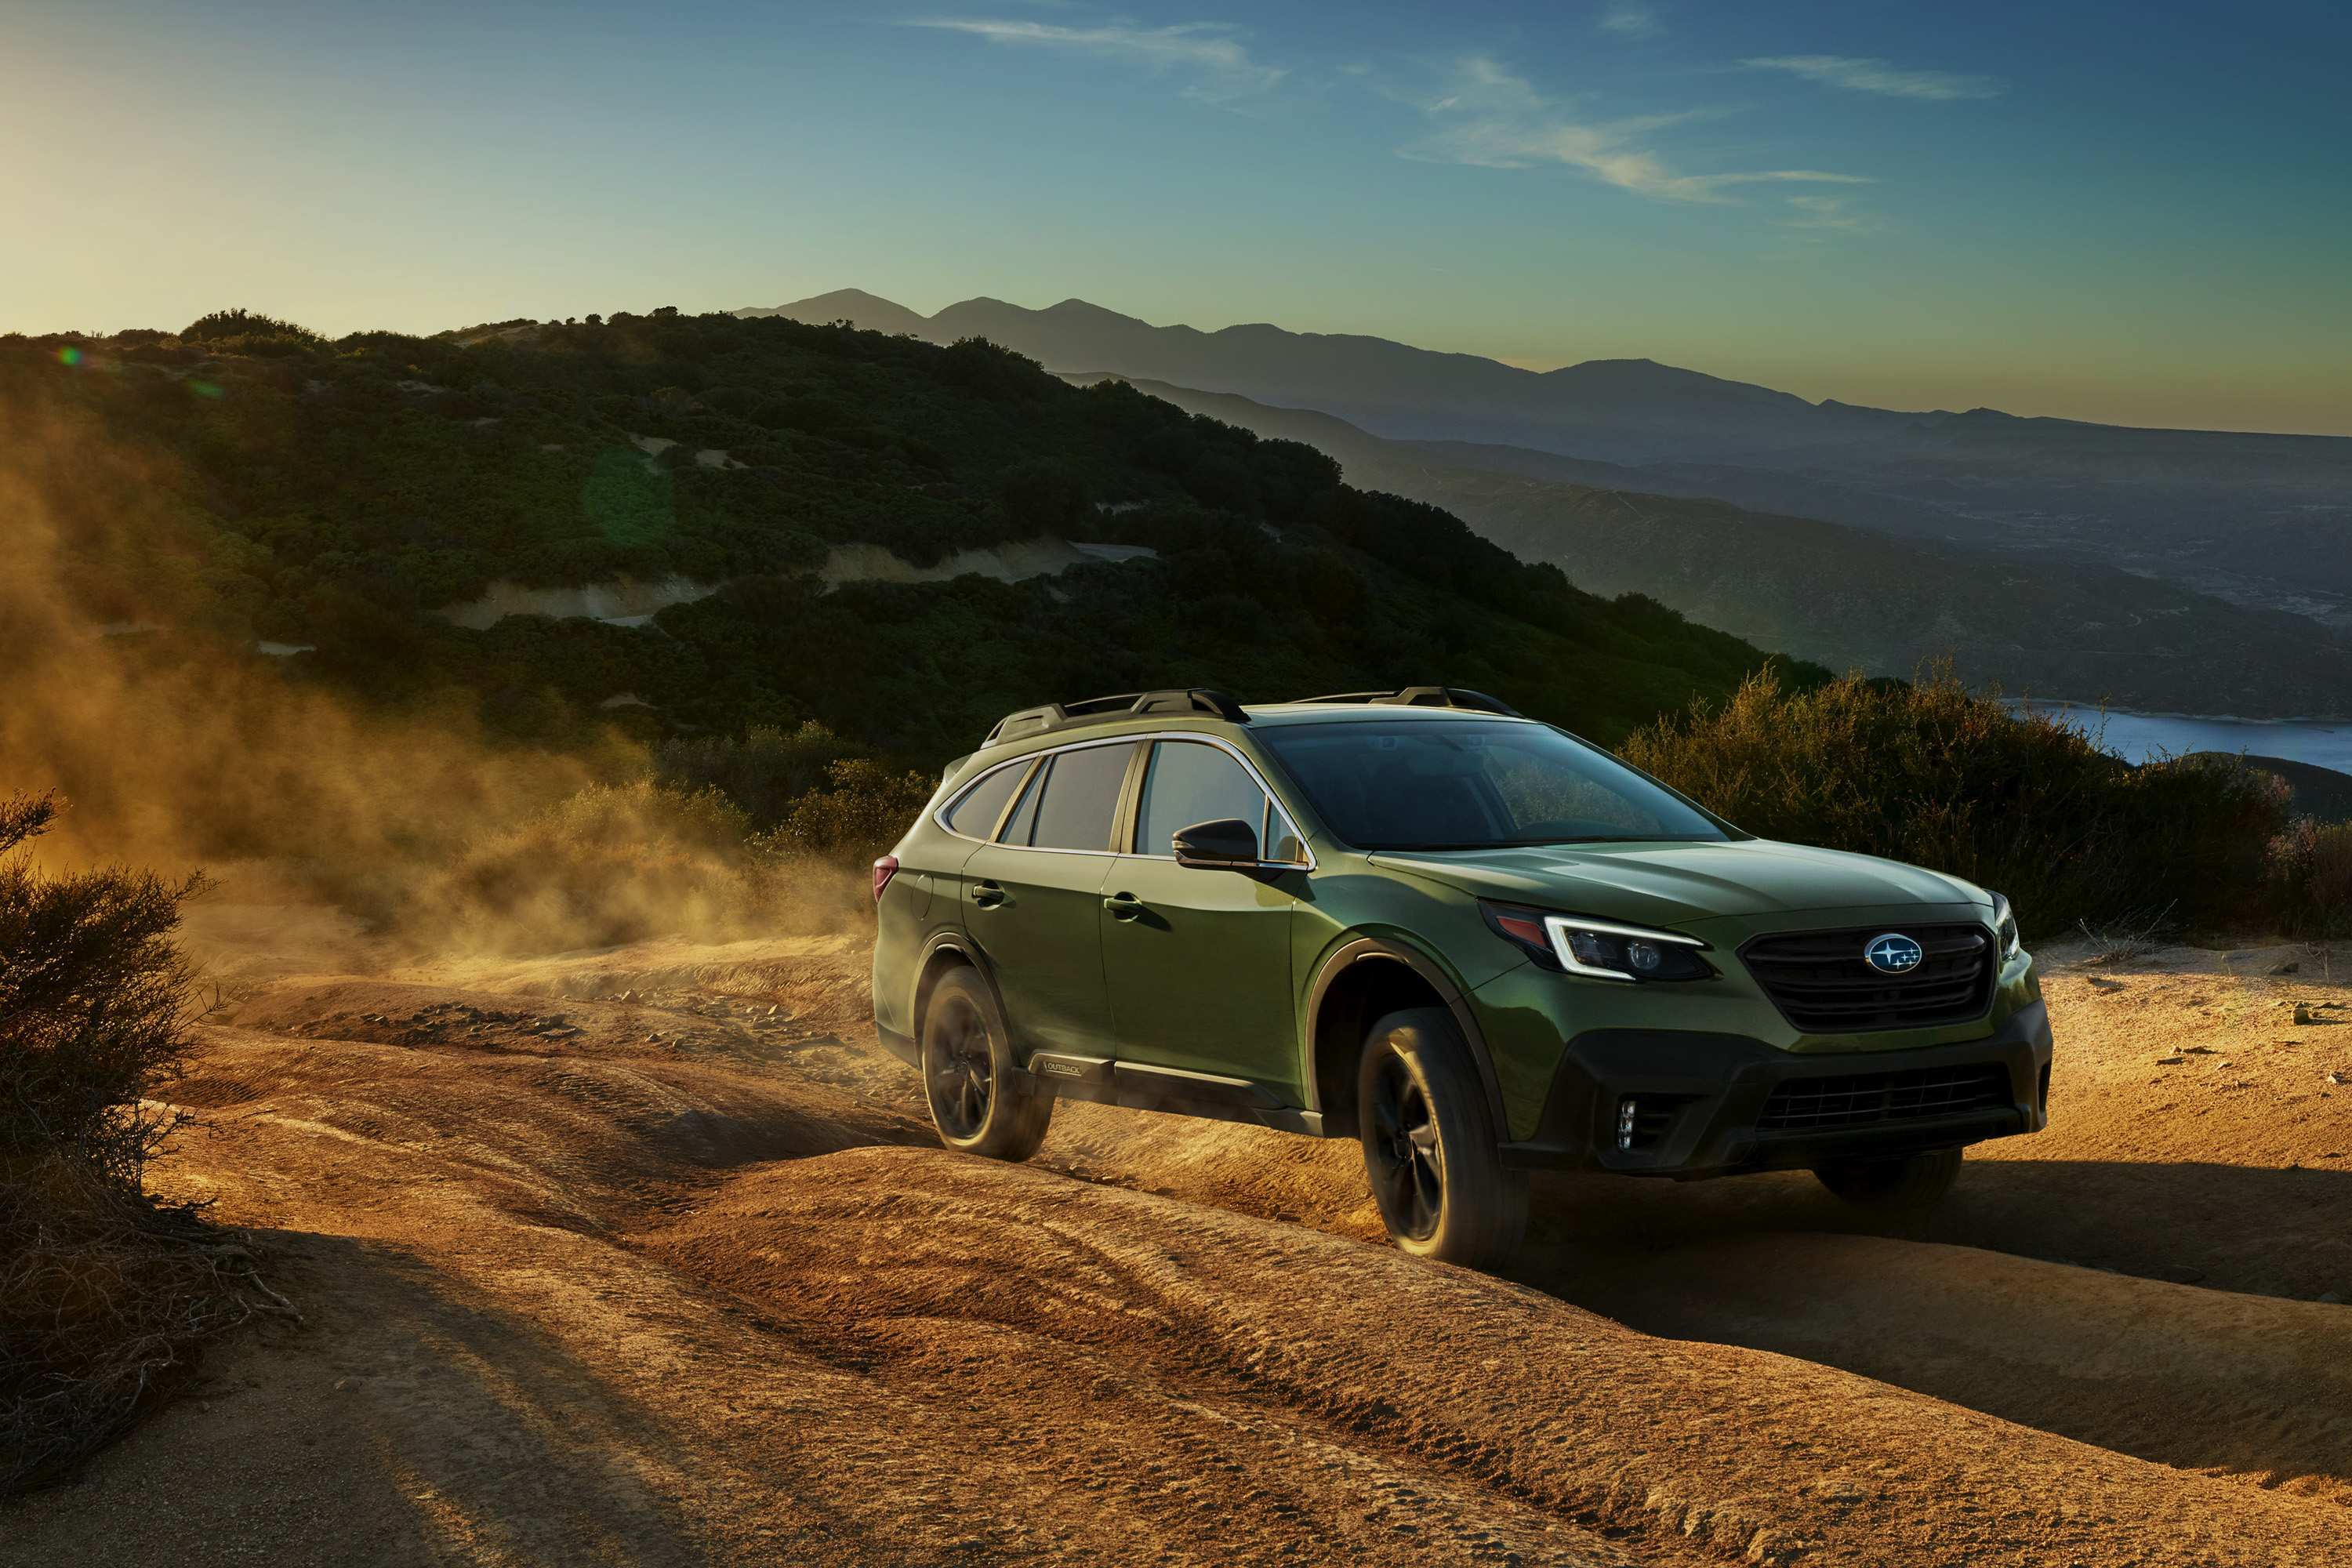 96 Gallery of Subaru Outback 2020 Price Speed Test by Subaru Outback 2020 Price